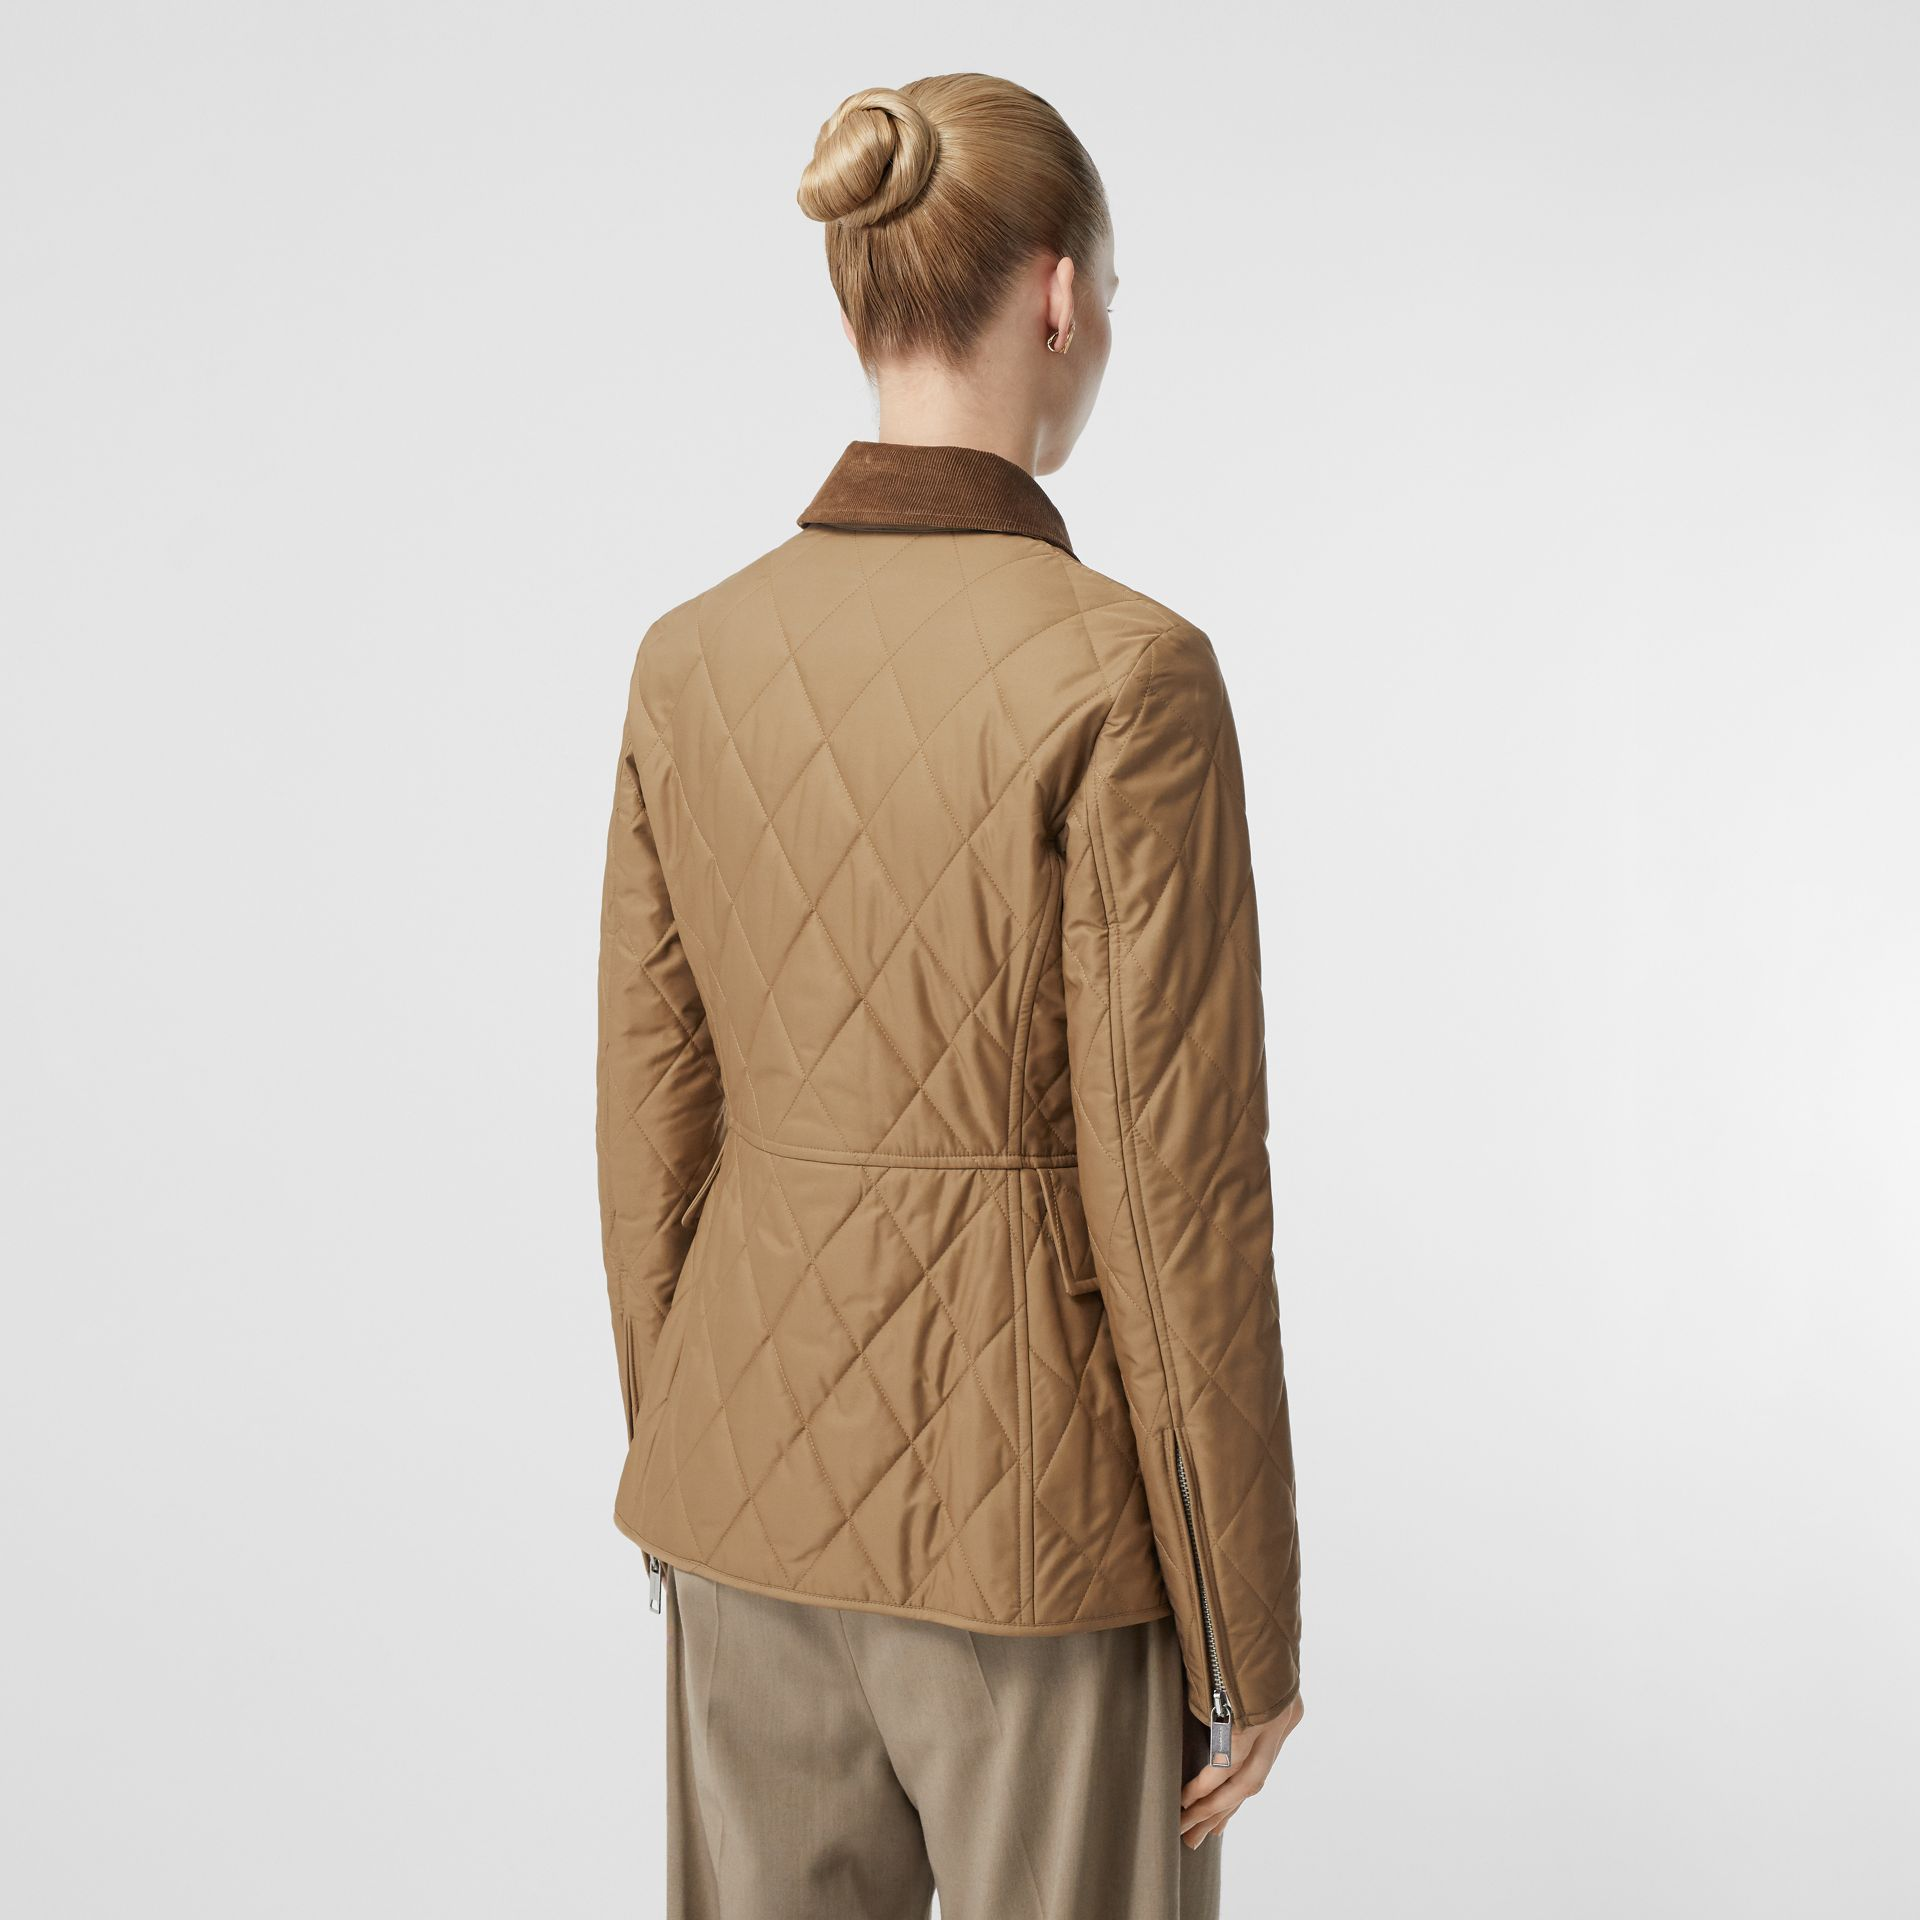 Monogram Motif Quilted Riding Jacket in Honey - Women | Burberry - gallery image 2